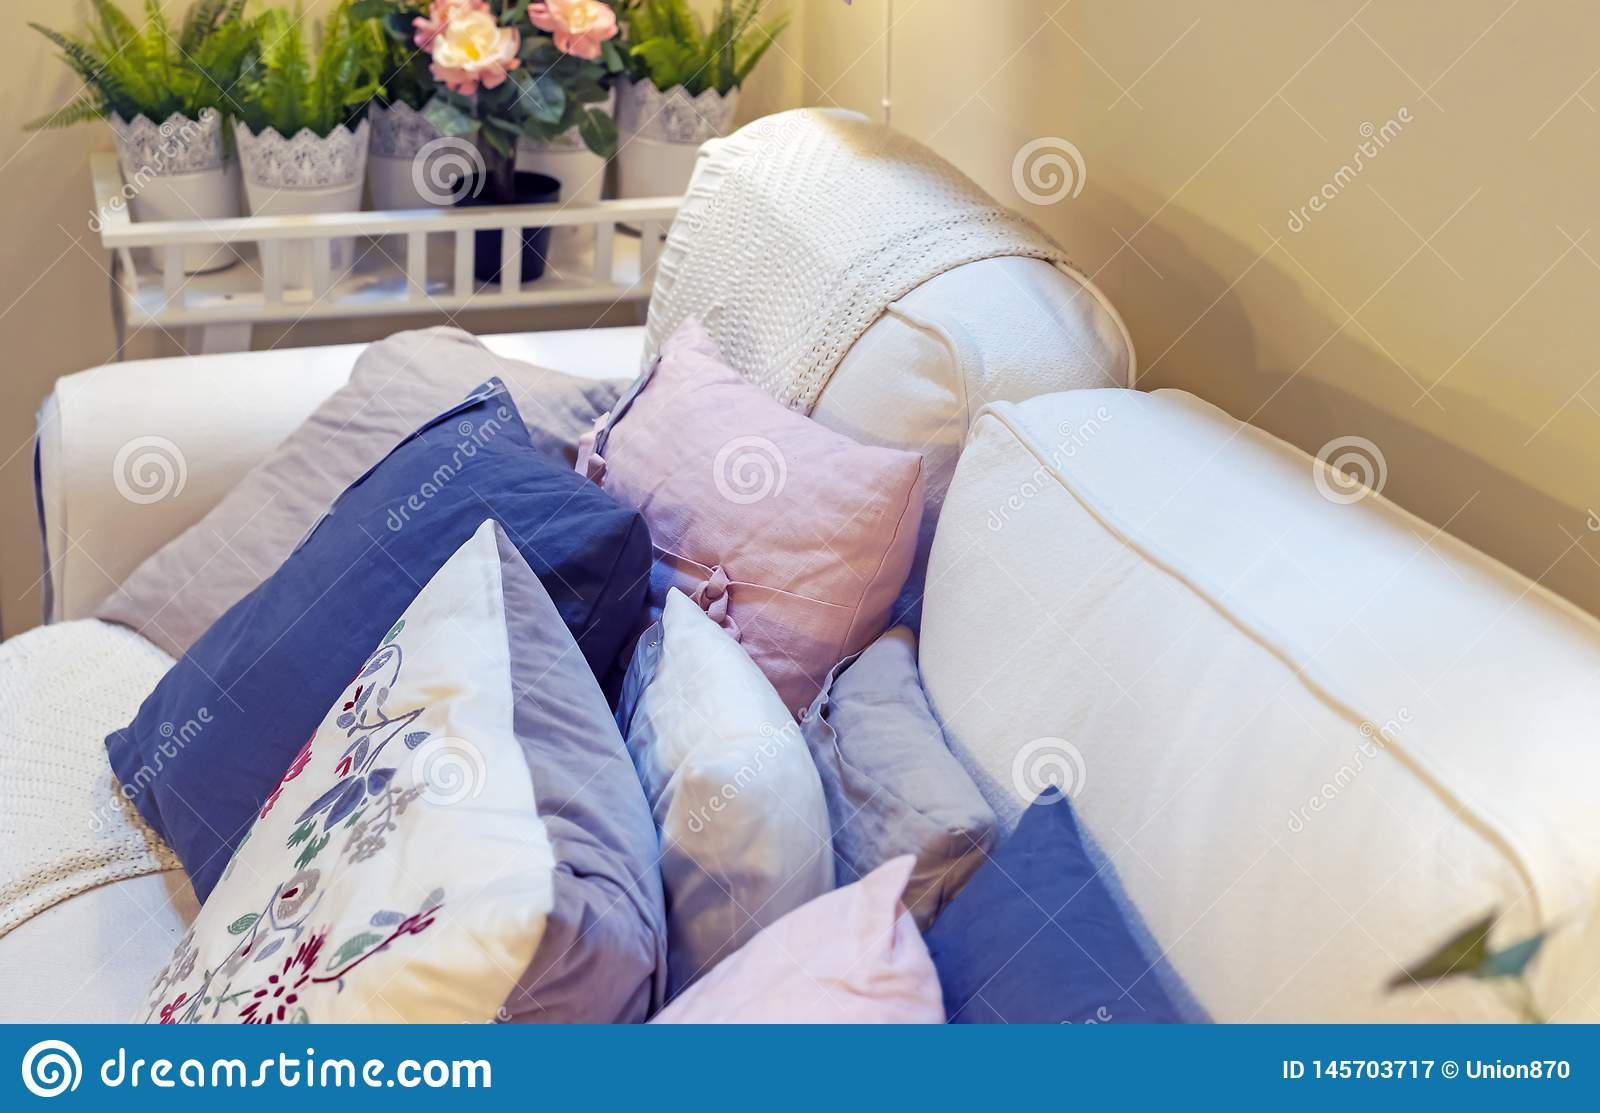 Peachy Decorative Pillows On A White Sofa In The Interior Of A Andrewgaddart Wooden Chair Designs For Living Room Andrewgaddartcom